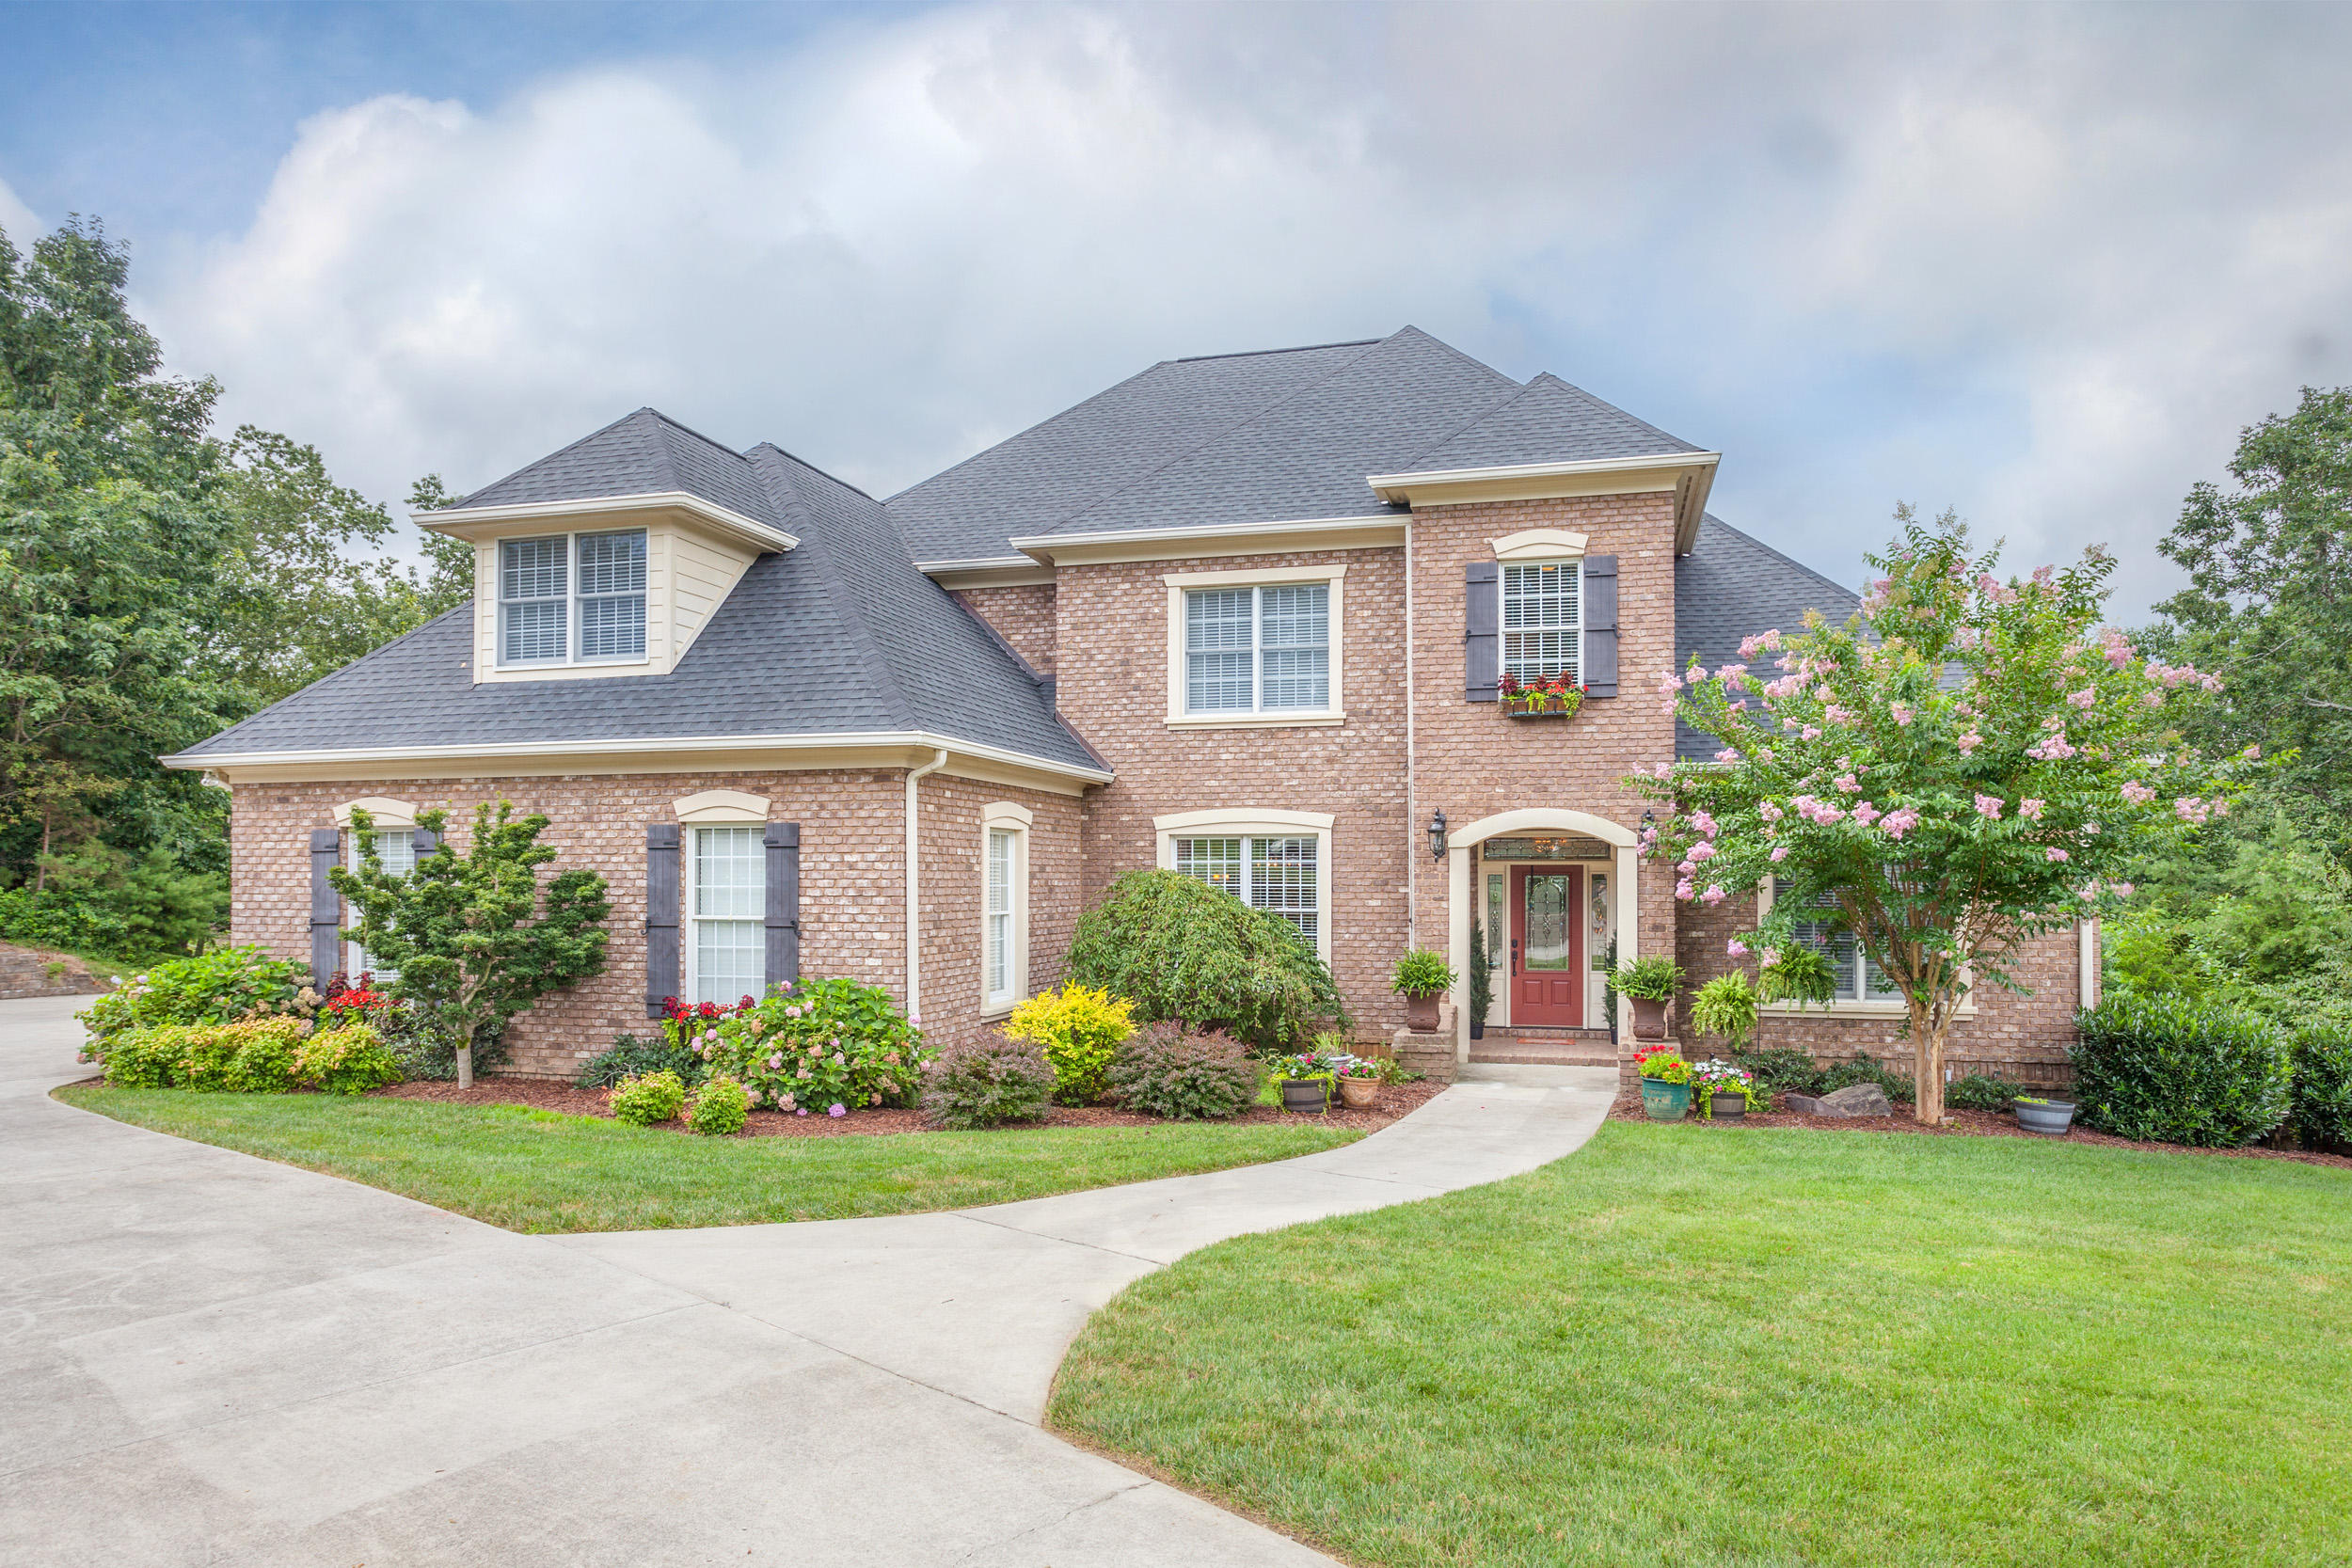 9804 Deer Ridge Dr, Ooltewah, TN 37363